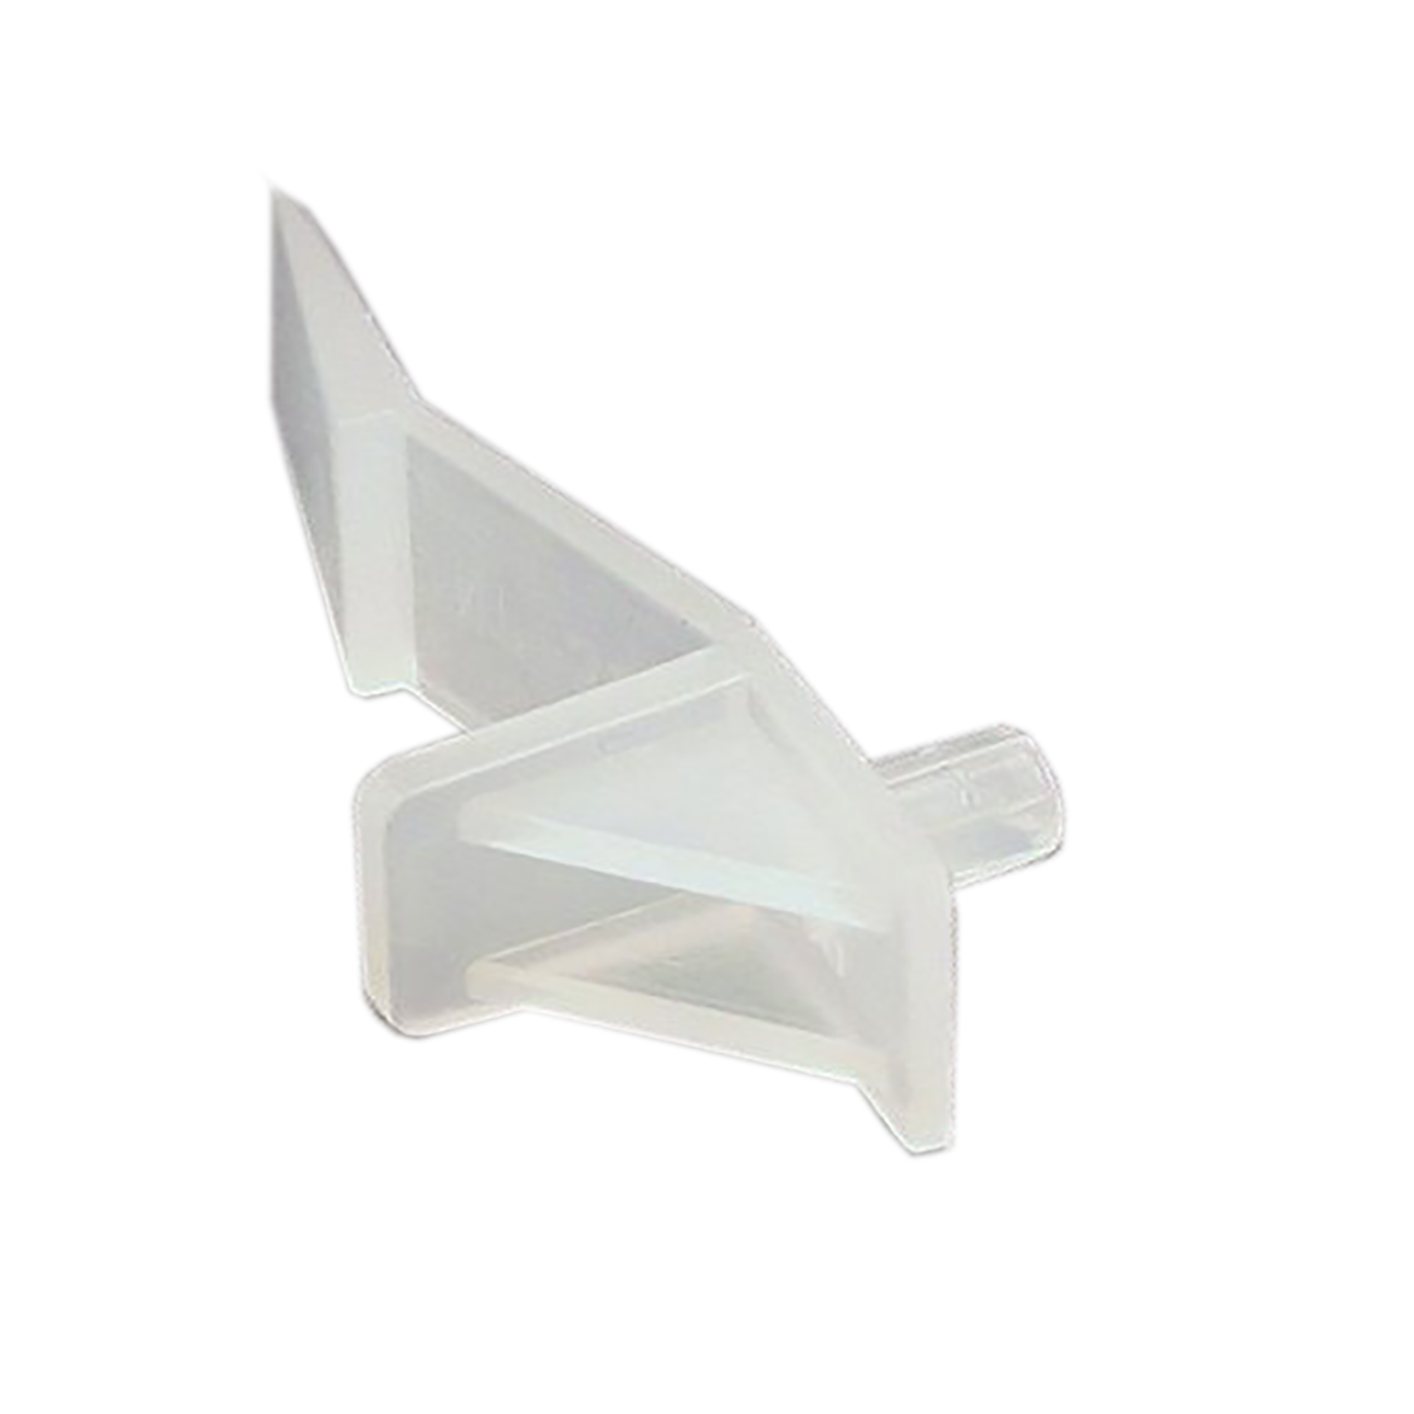 Locking Shelf Support For 5 8 Quot Board White 03 2426 W